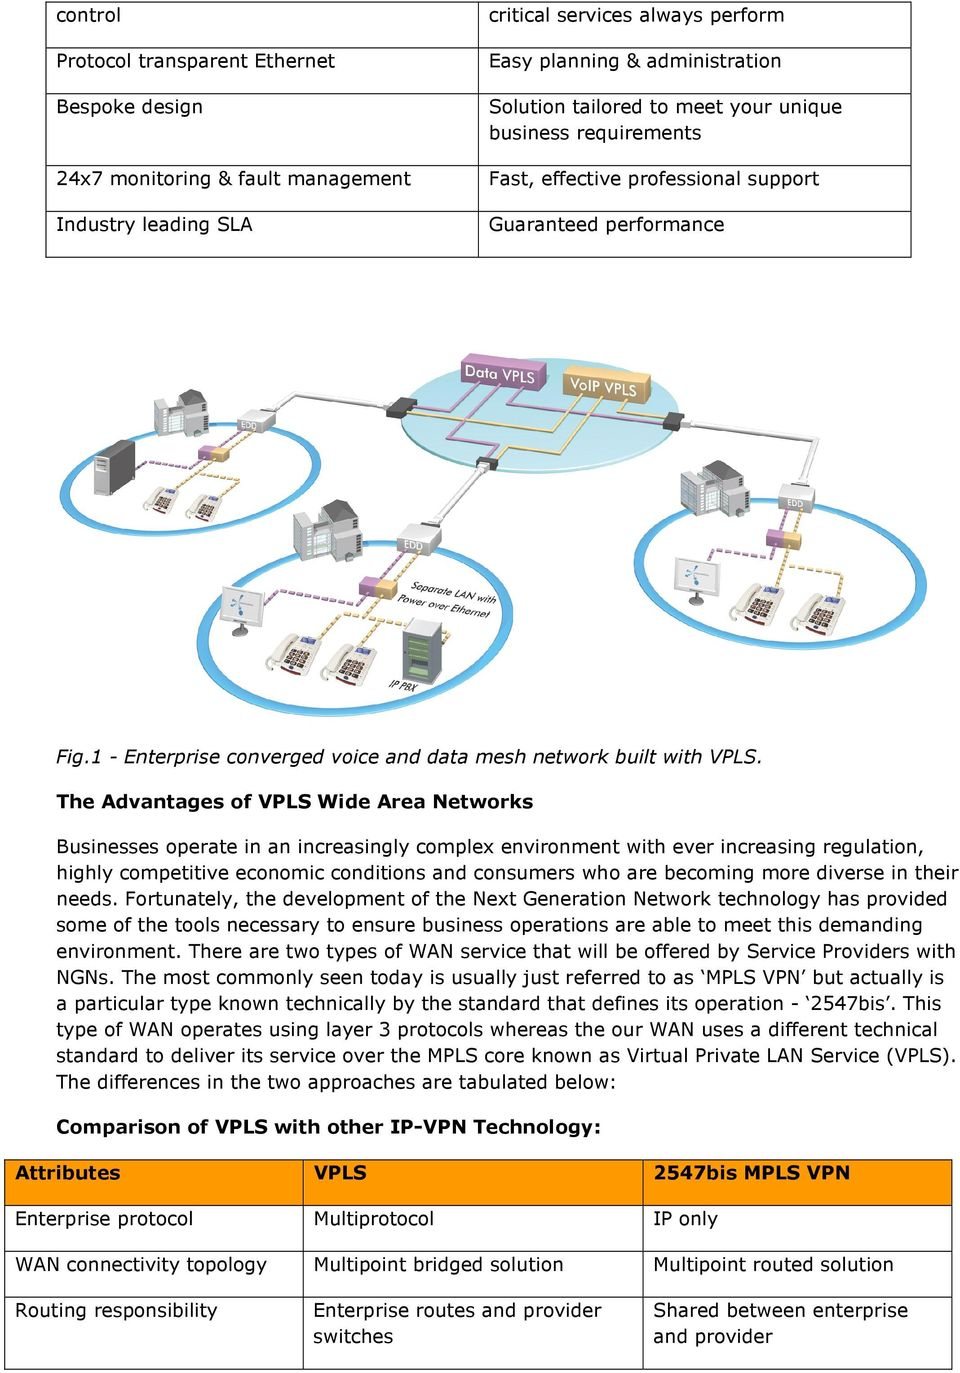 The Advantages of VPLS Wide Area Networks Businesses operate in an increasingly complex environment with ever increasing regulation, highly competitive economic conditions and consumers who are